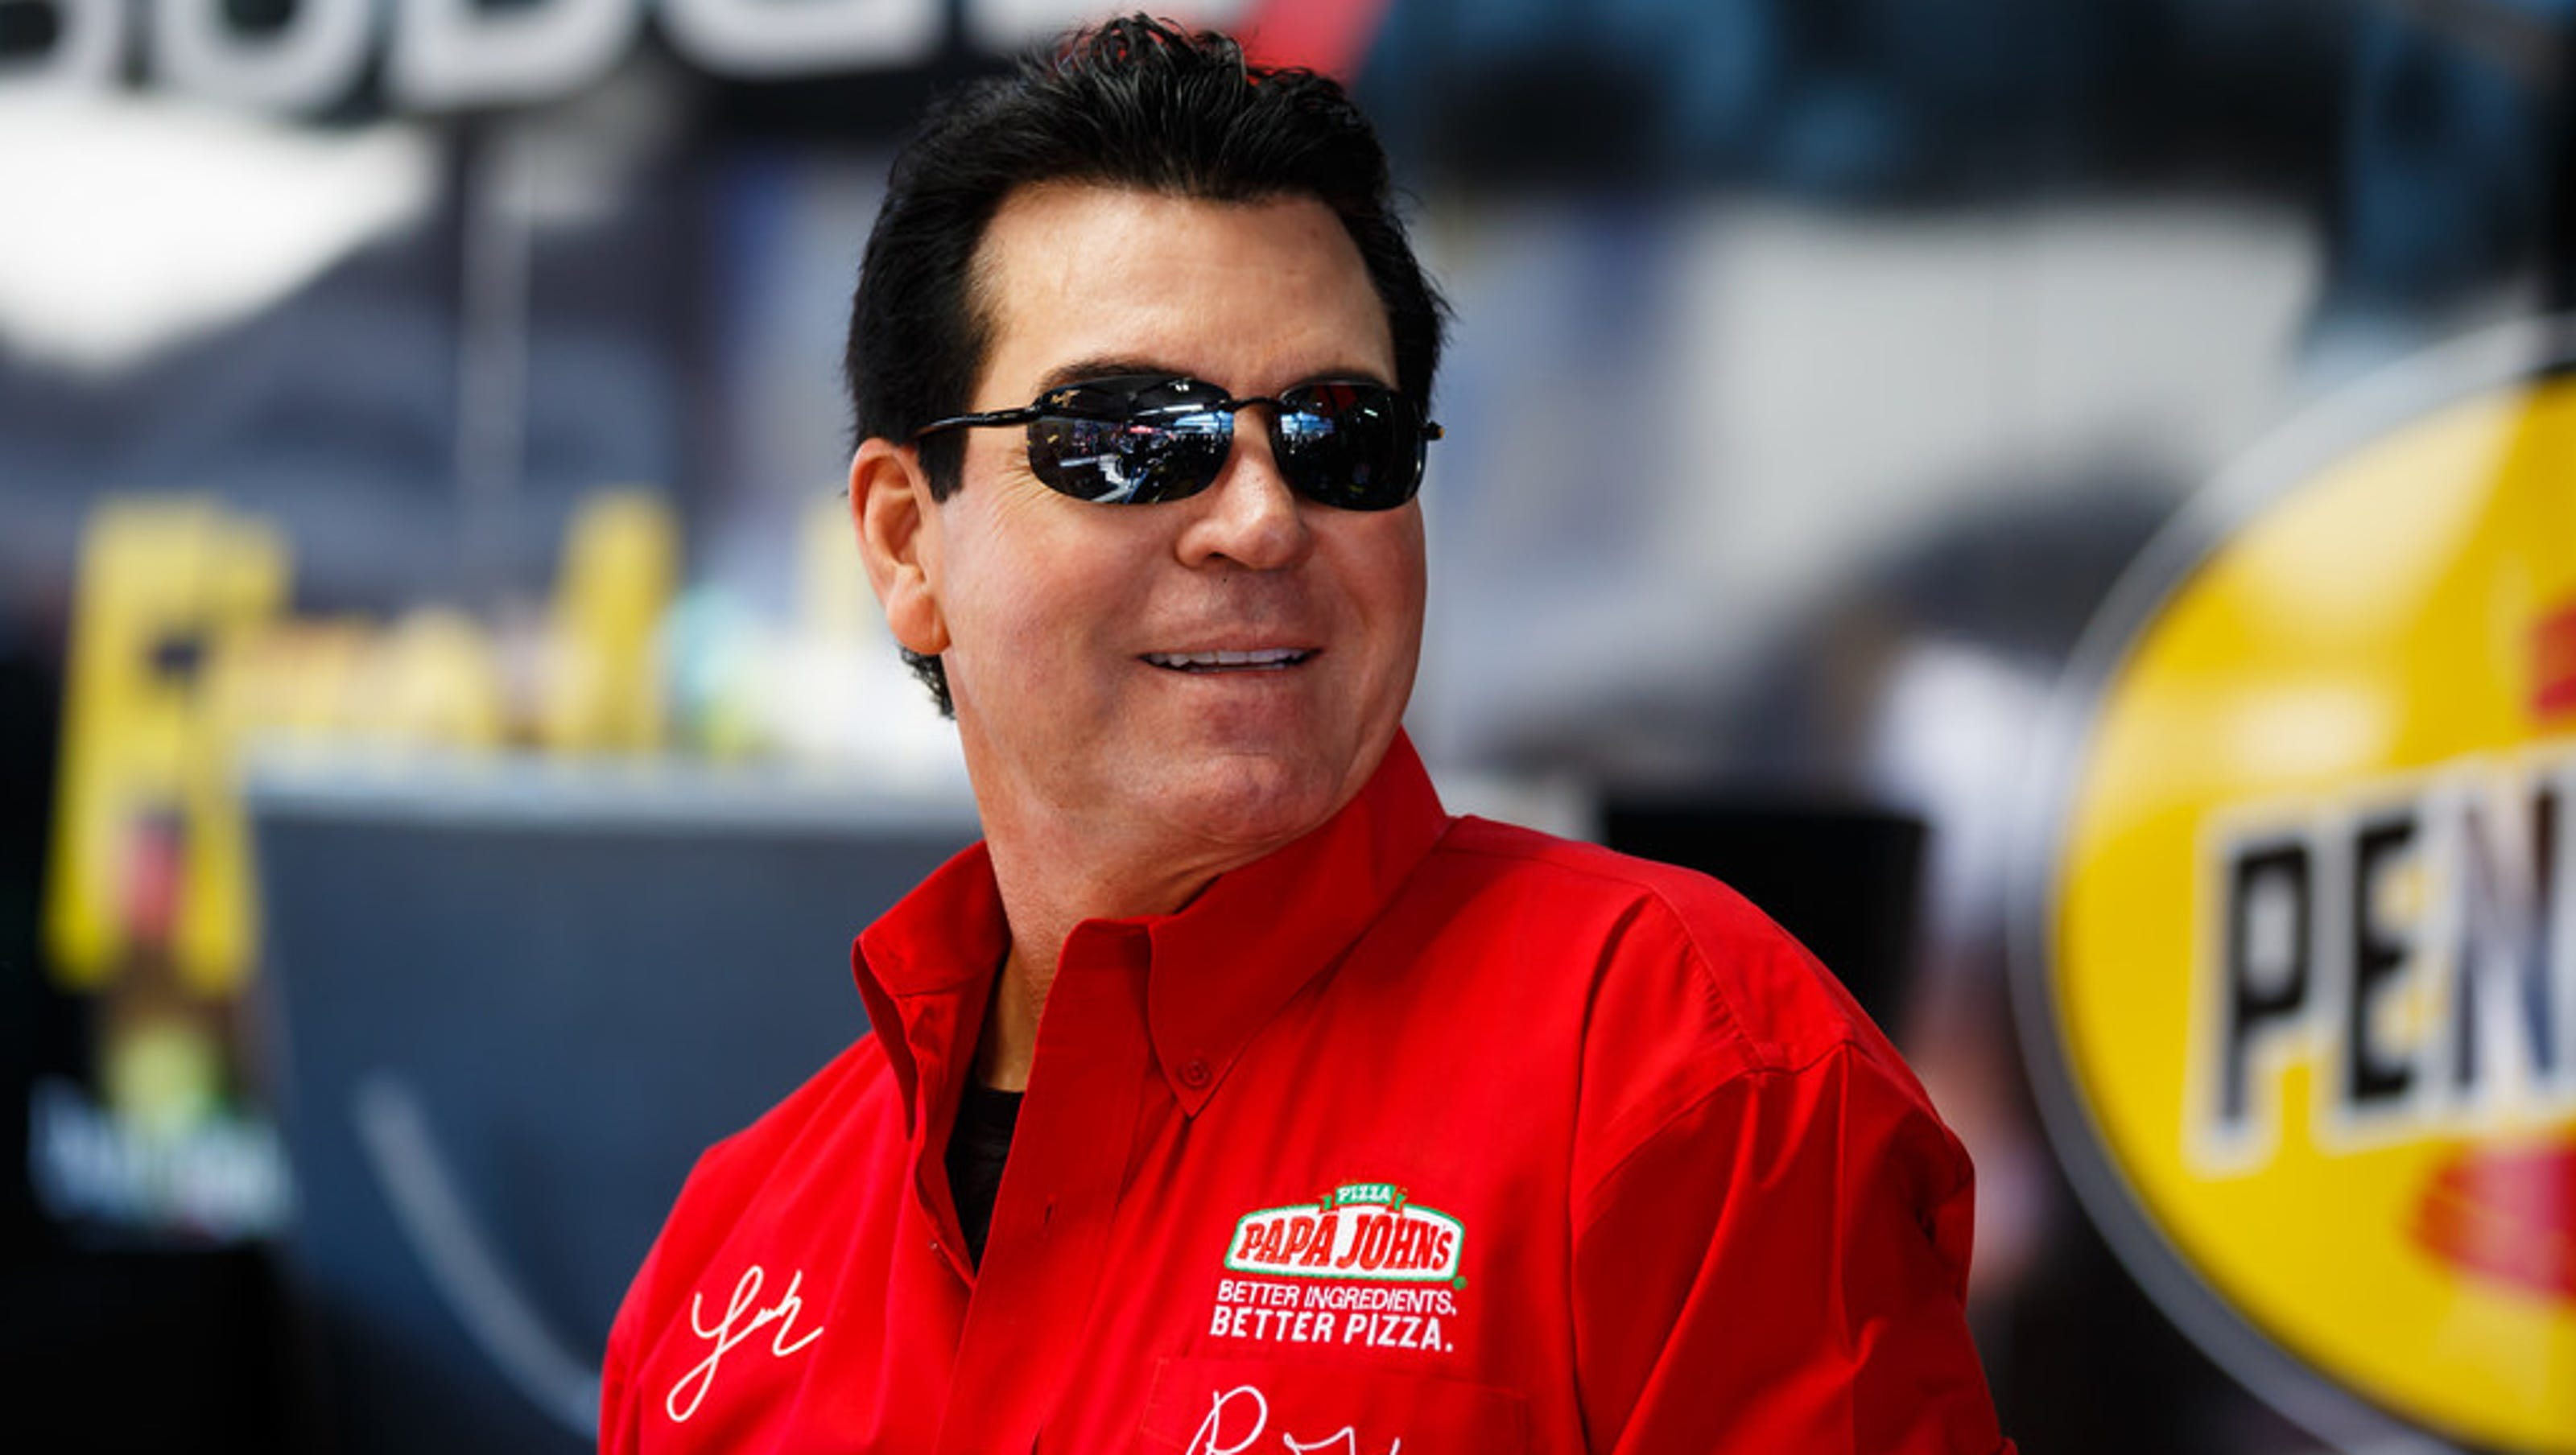 Papa John Schatters Wealth Is Astounding Hes Super Rich